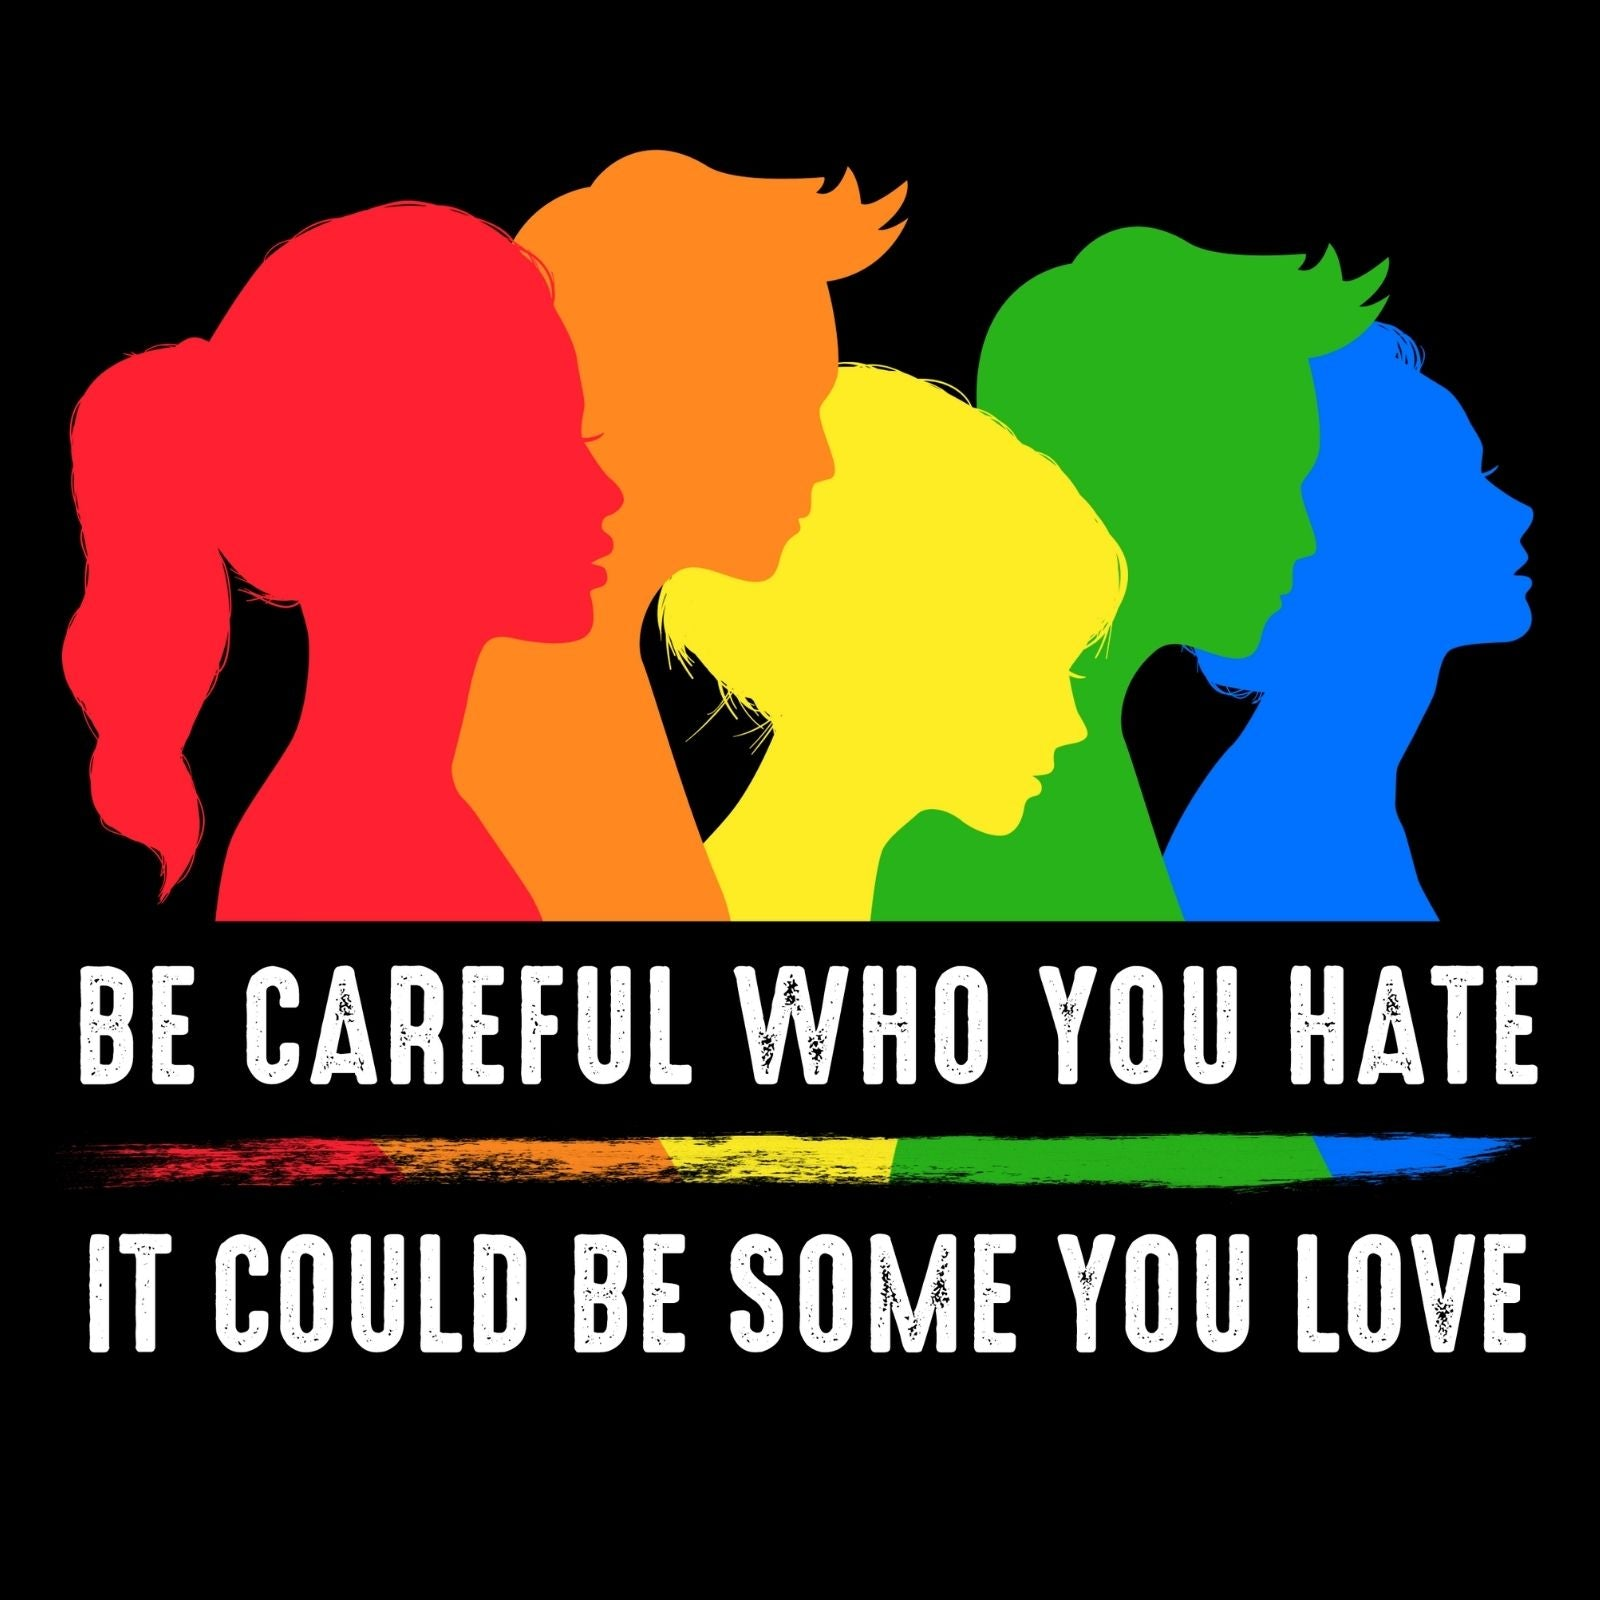 Be Careful Who You Hate It Could Be Some You Love - Bastard Graphics